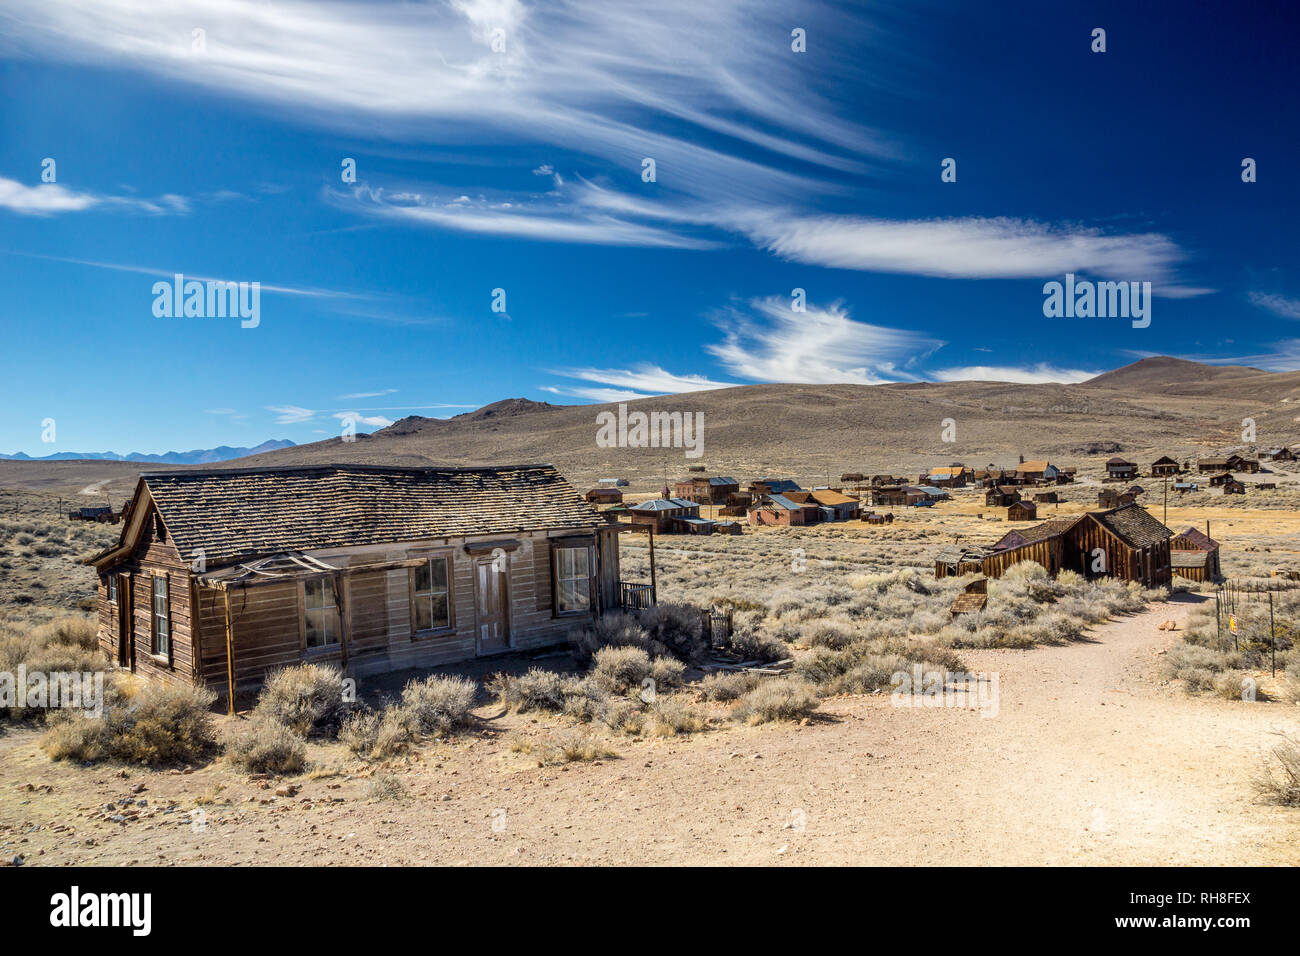 Ghosttown of Bodie in the California Desert - Stock Image